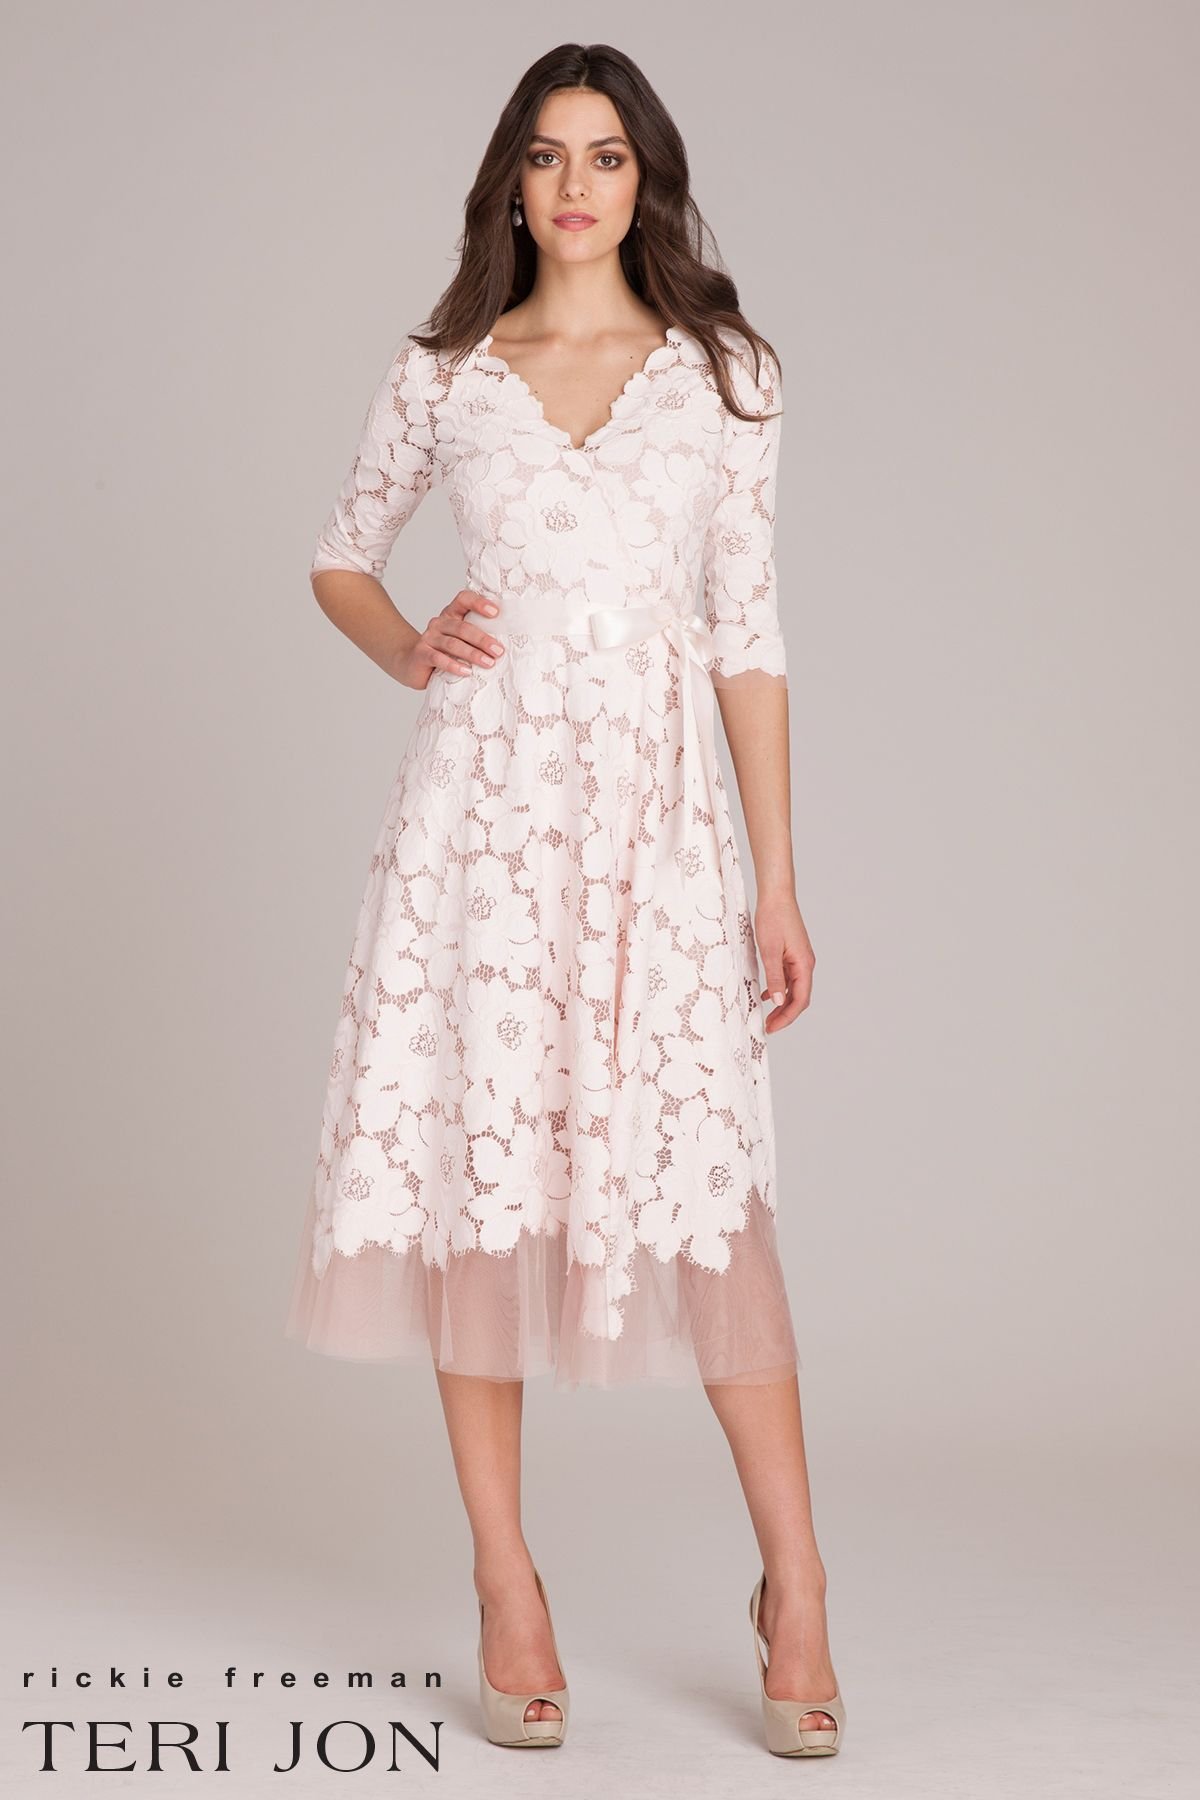 4a11e4d40d0b2 ¾ Sleeve Embellished Lace Fit and Flare Dress. As the Mother of the Bride  or Groom, you'll look light and elegant in blush lace and tulle on your  child's ...